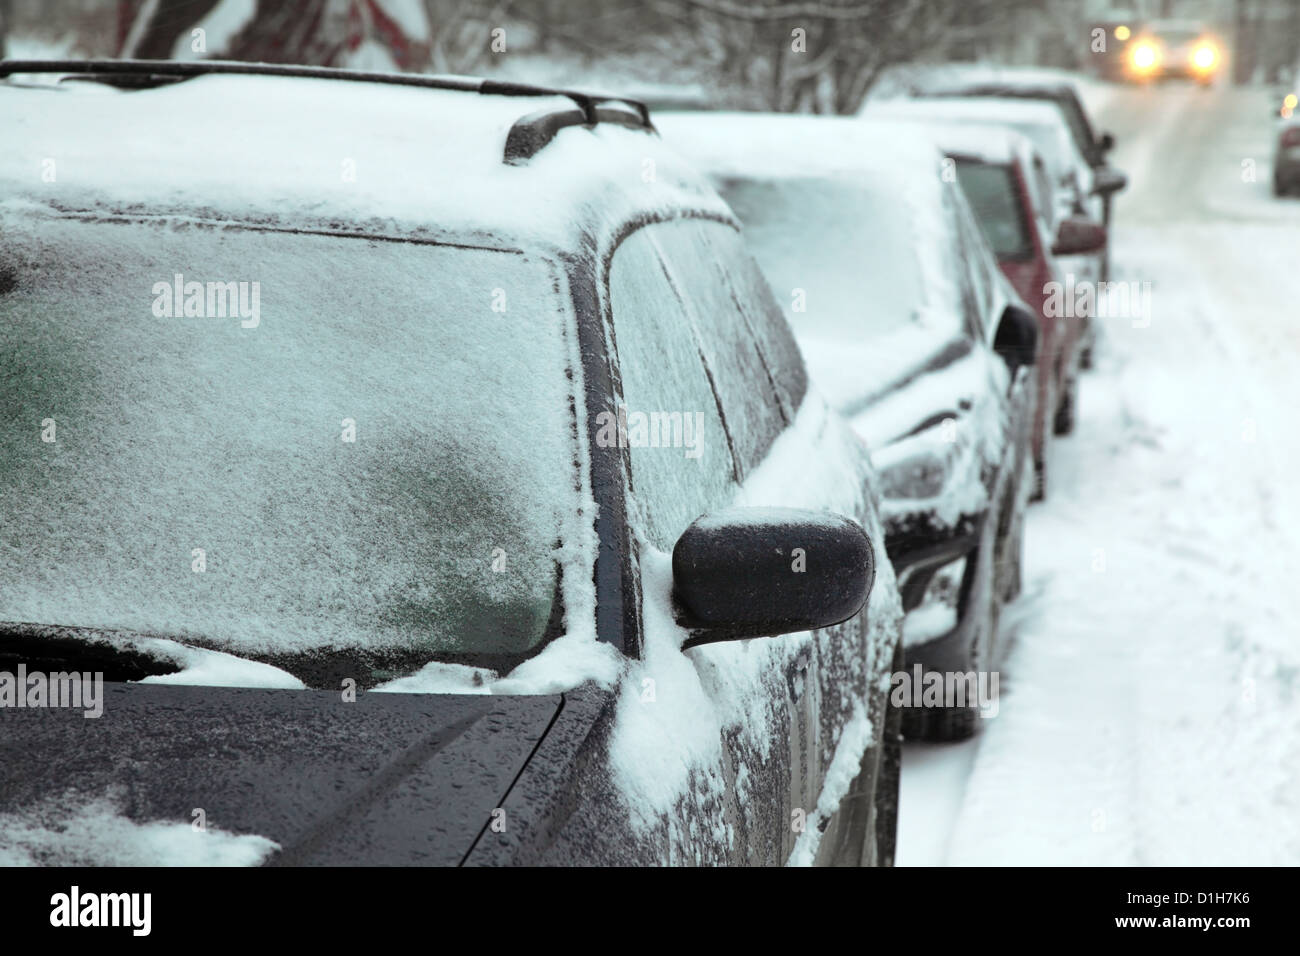 European winter. Snow covered cars. - Stock Image